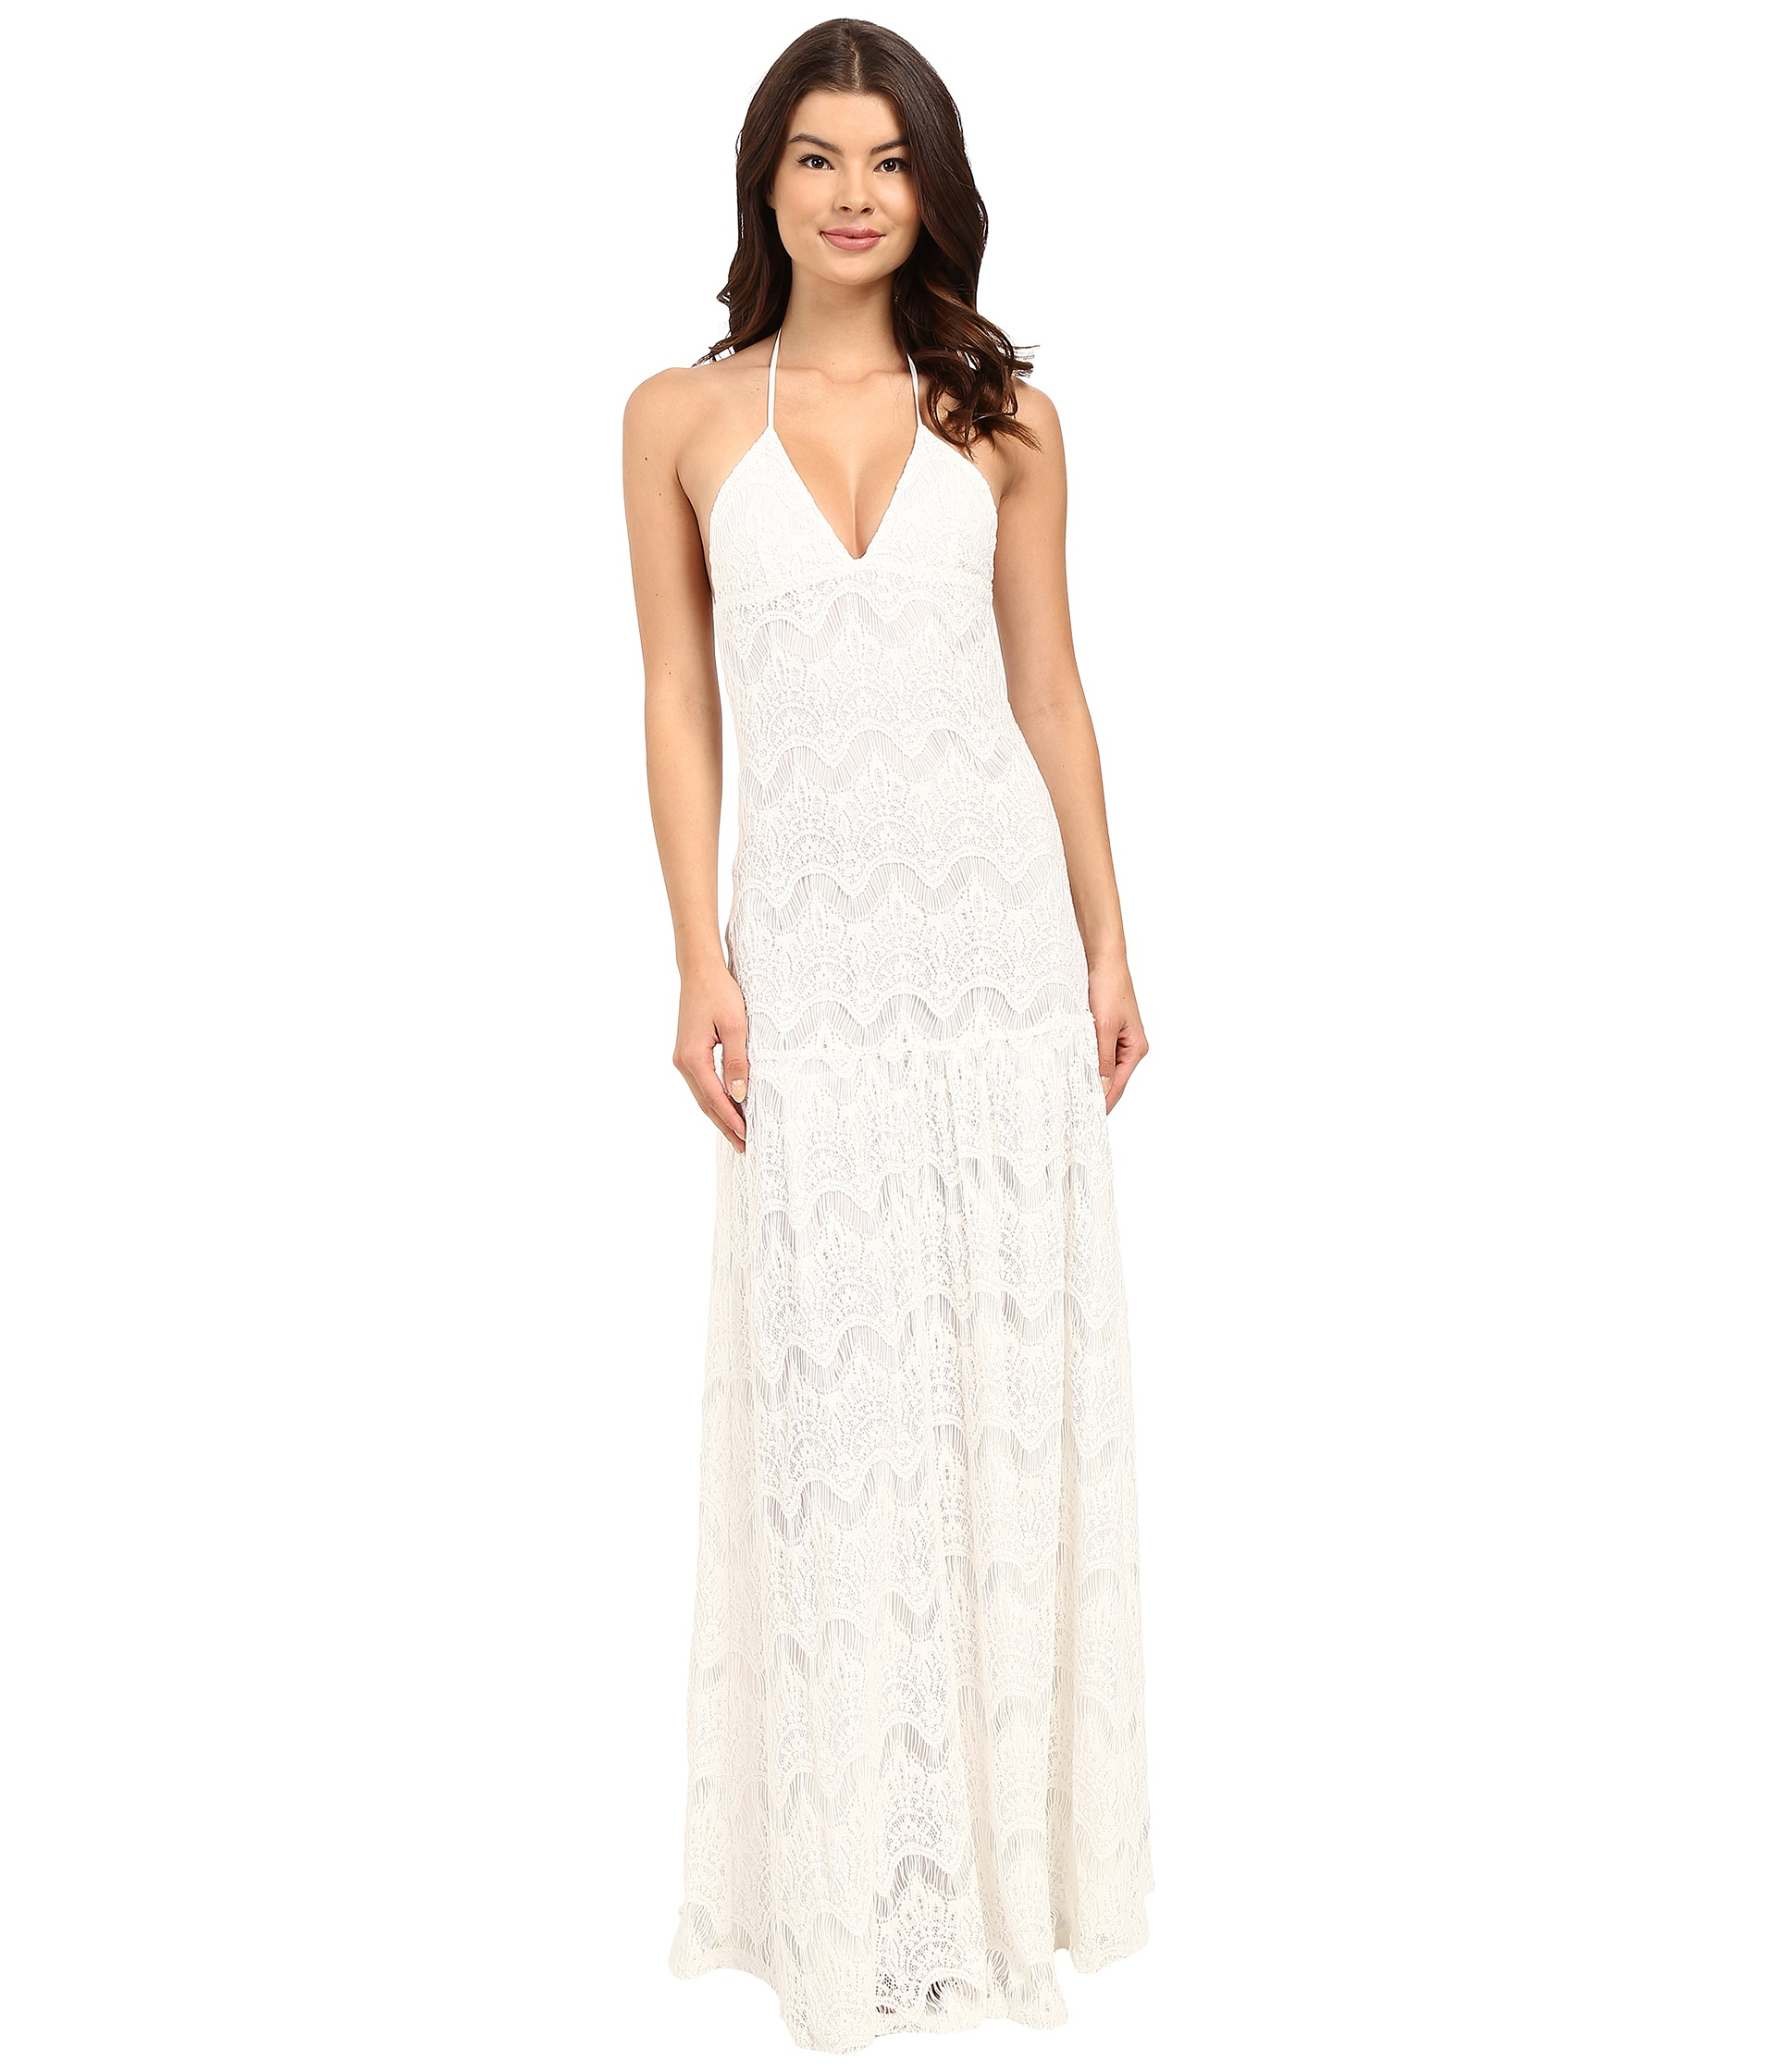 6 shore road by pooja lace someone special wedding dress for Cover up wedding dress